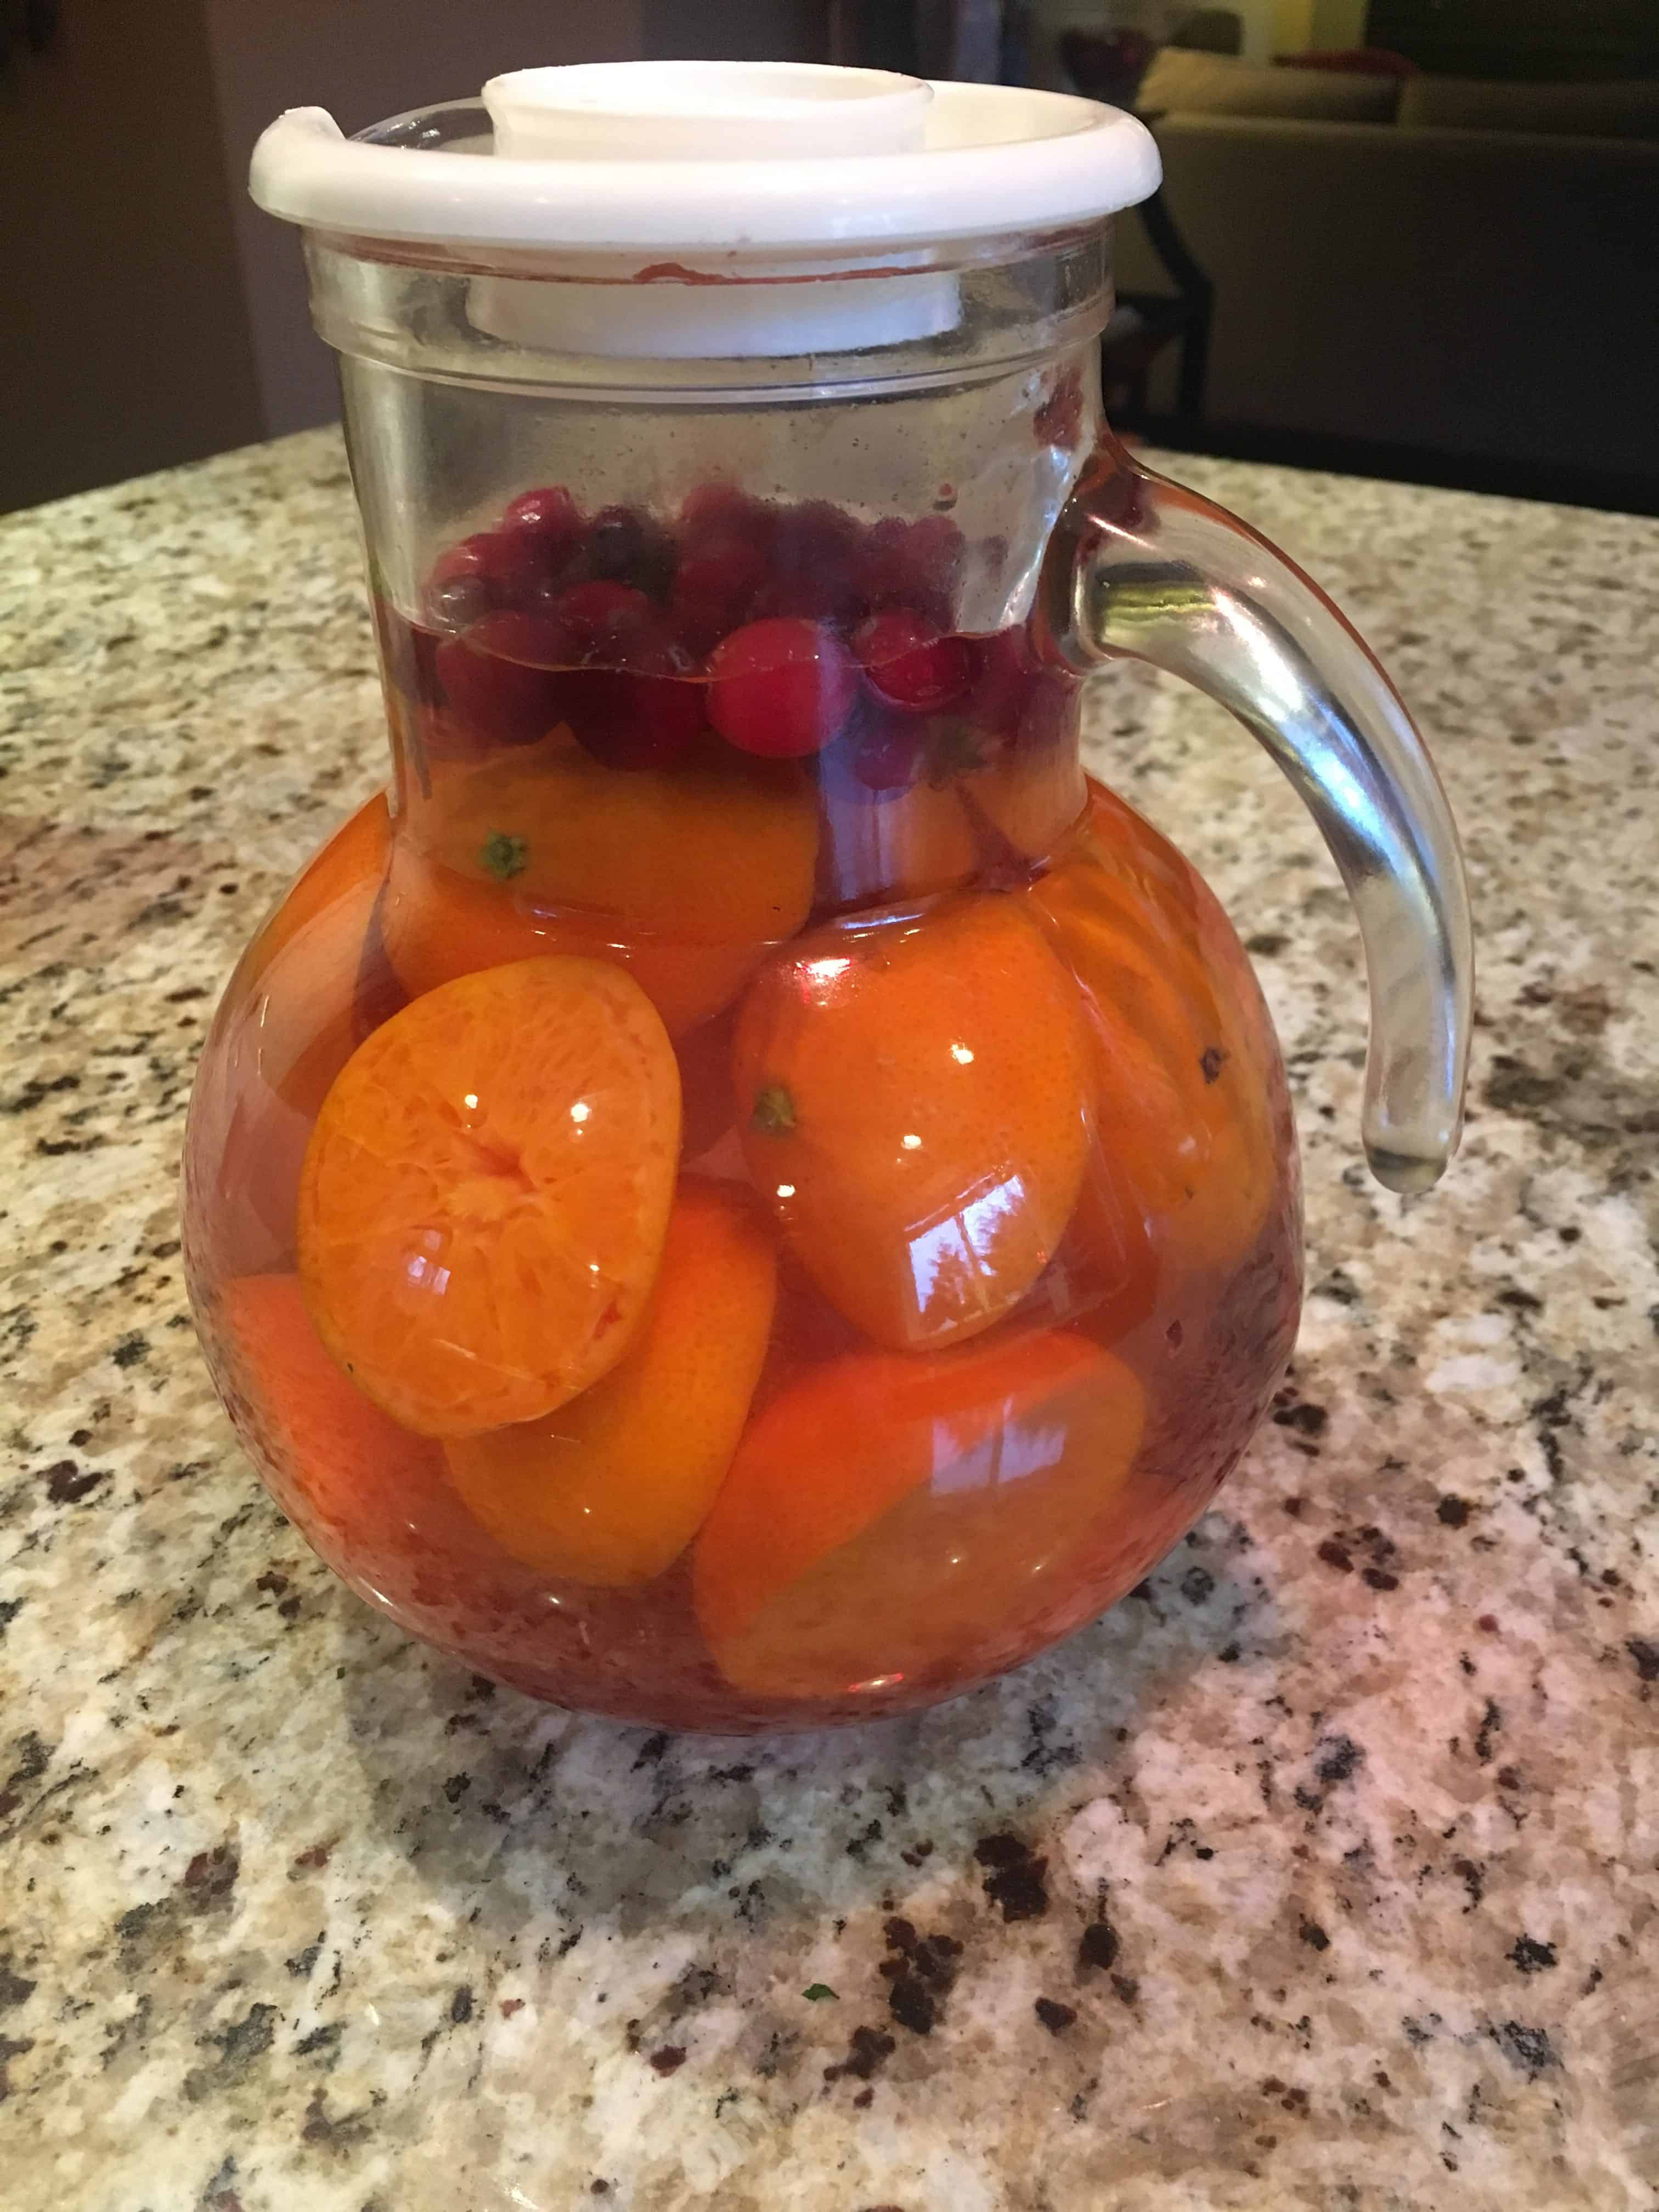 Pitcher of Orange, Cranberry, Cinnamon Stick Infused Water. https://trimazing.com/